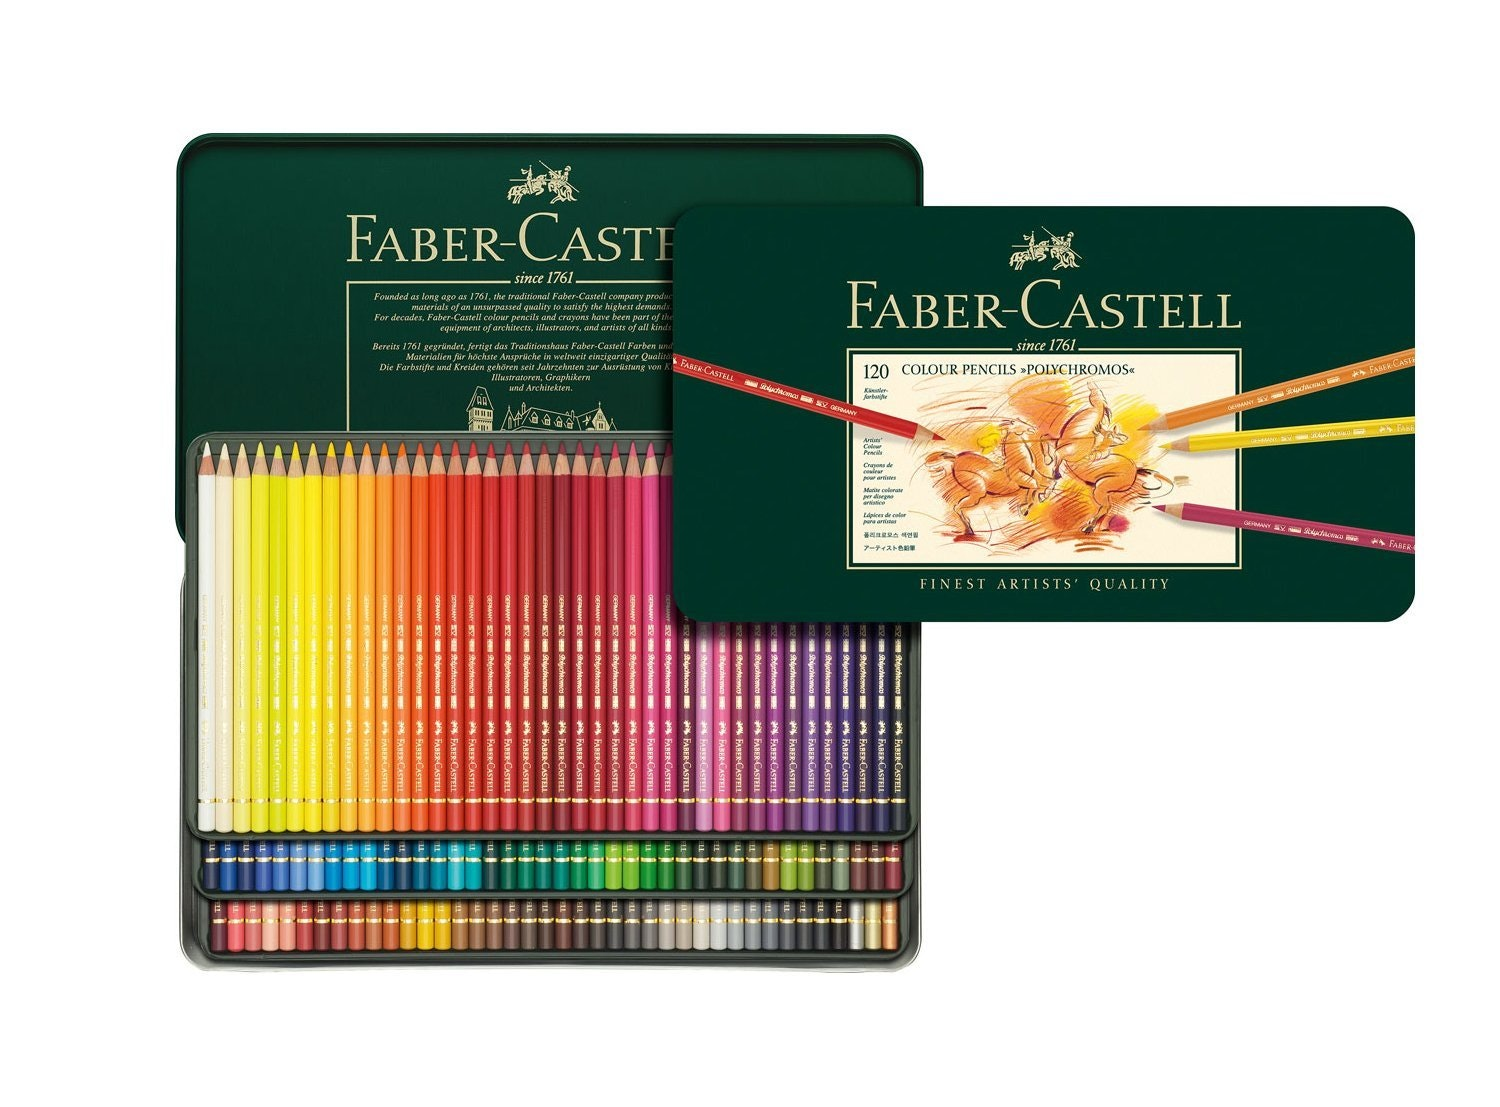 Faber-Castell Color Pencil Polychromos Tin of 120 sweepstakes